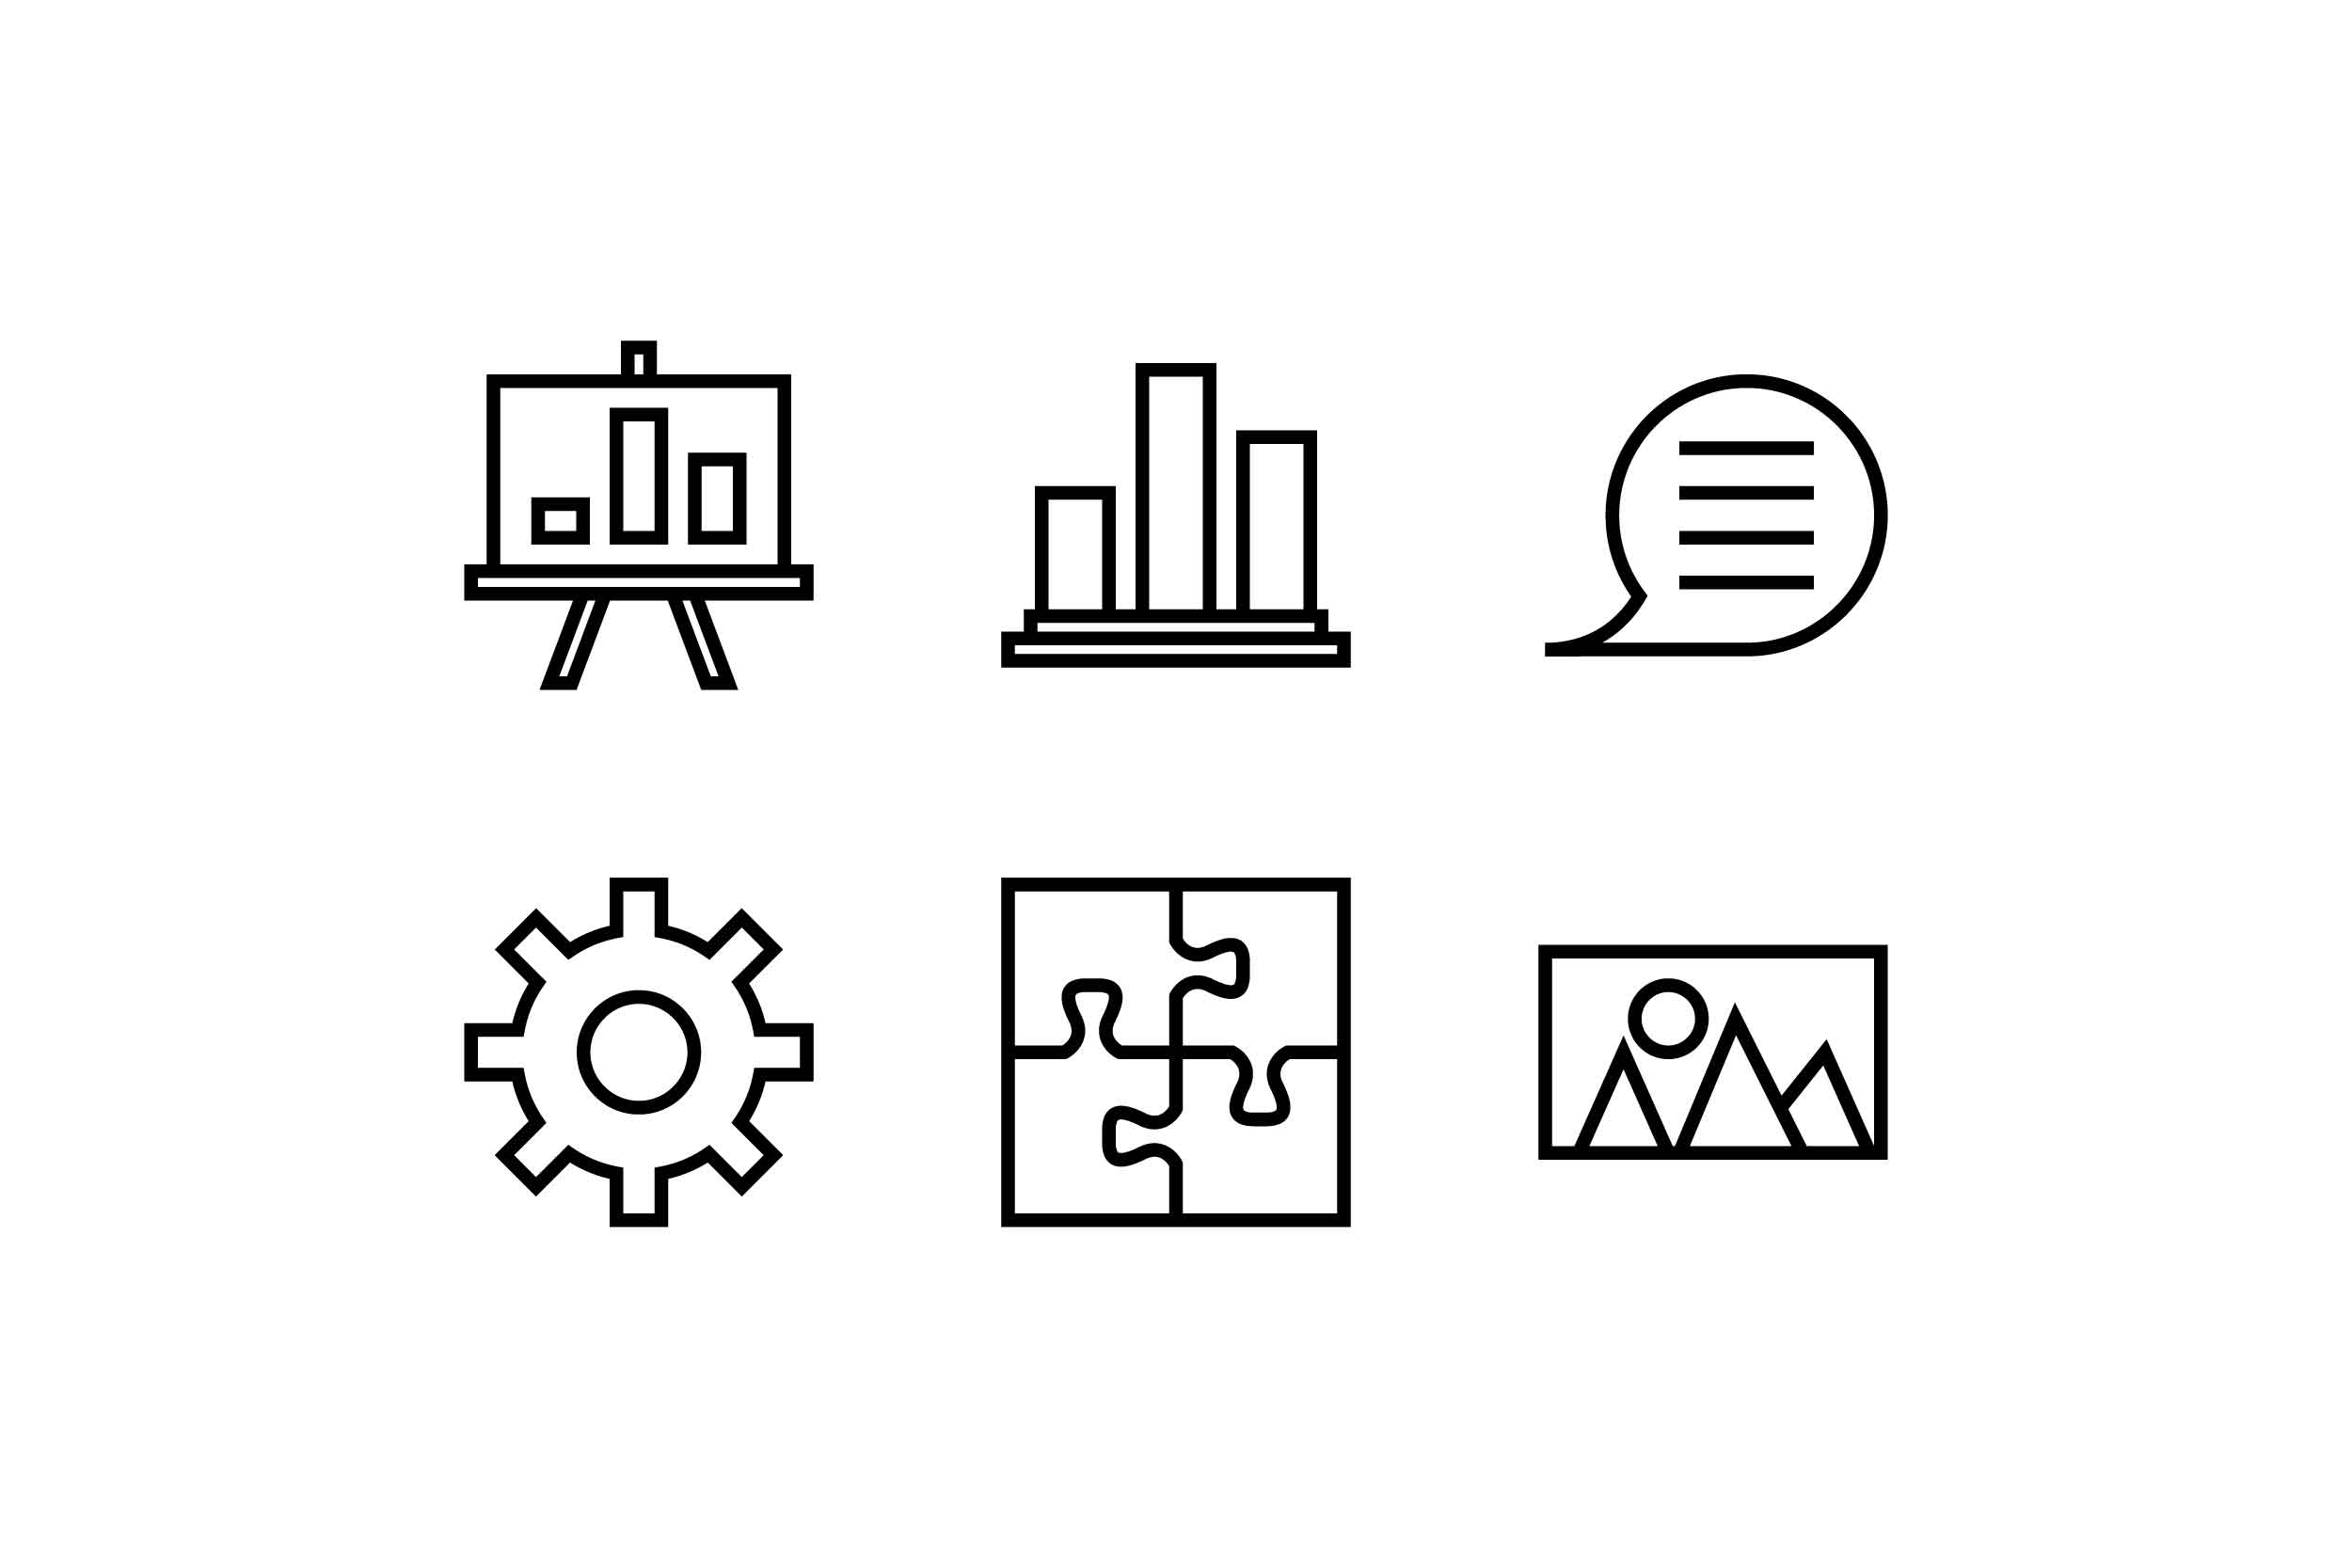 Download Free Setting Black And White Line Icon Graphic By Muhammadfaisal40 for Cricut Explore, Silhouette and other cutting machines.